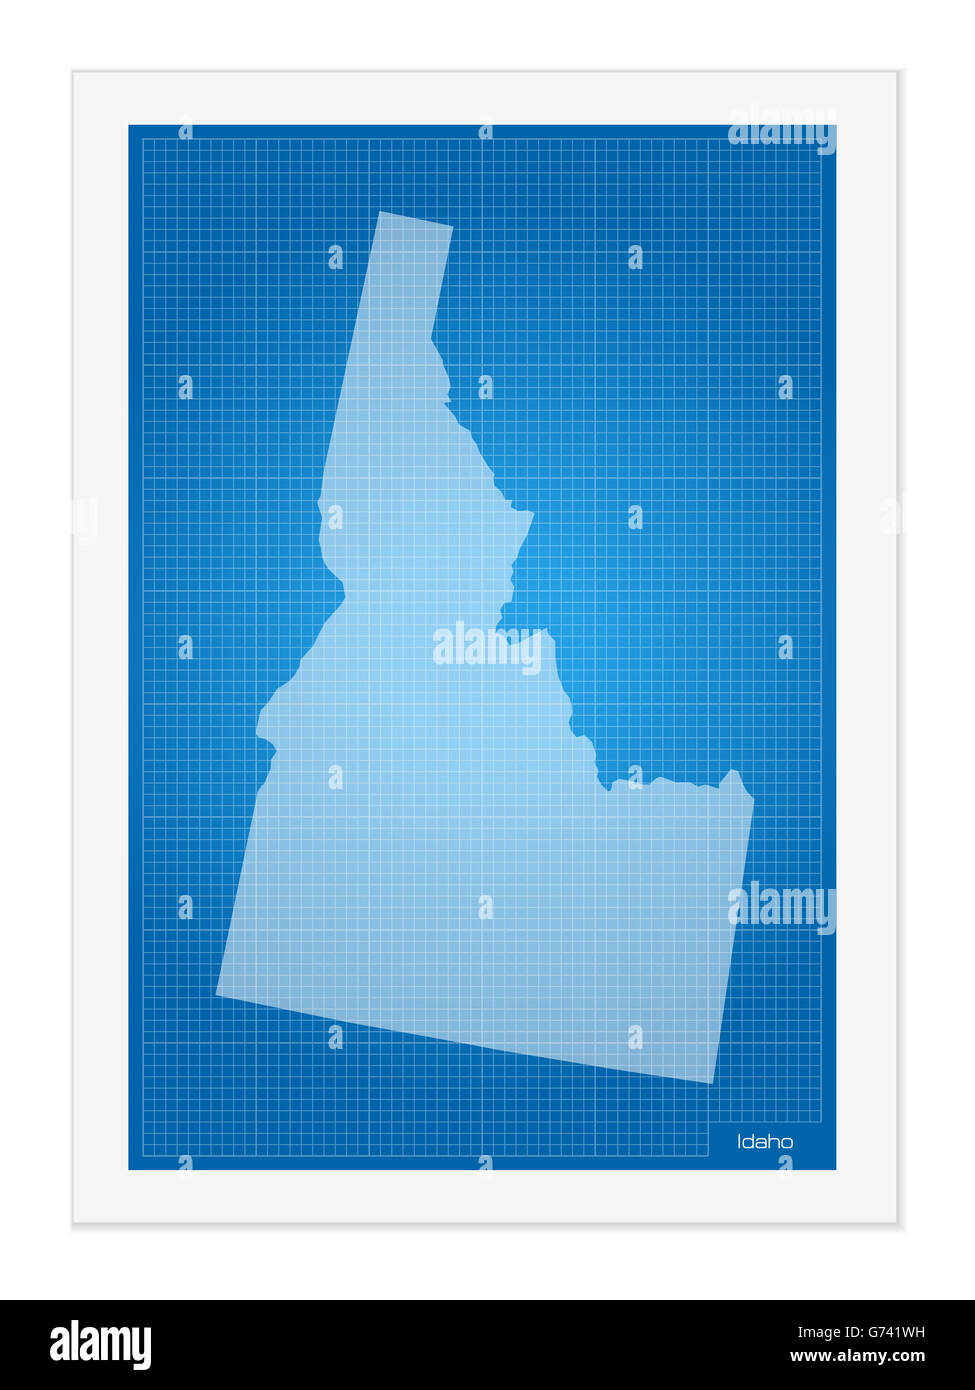 Idaho on blueprint on a white background. - Stock Image